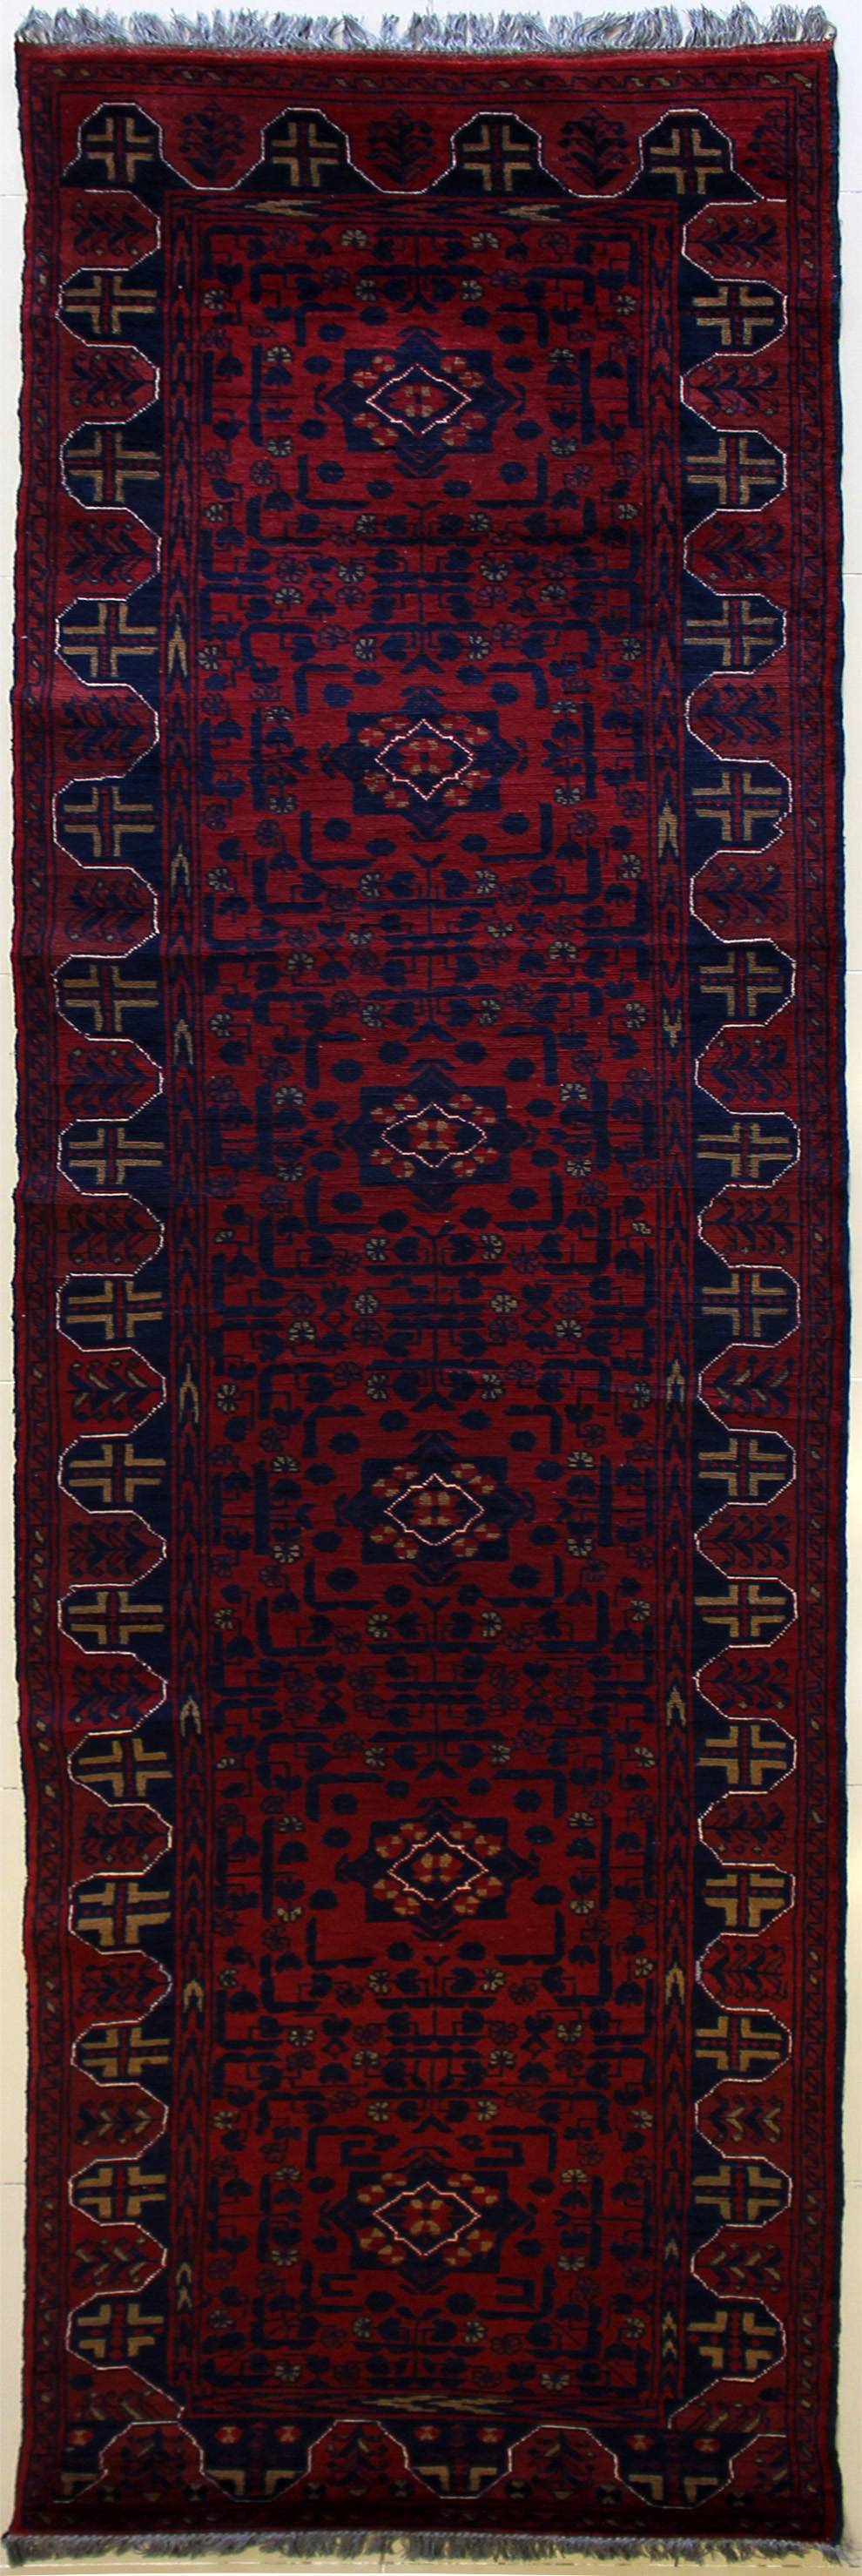 "2'6""x12'3"" Tribal Khan Mohammadi"